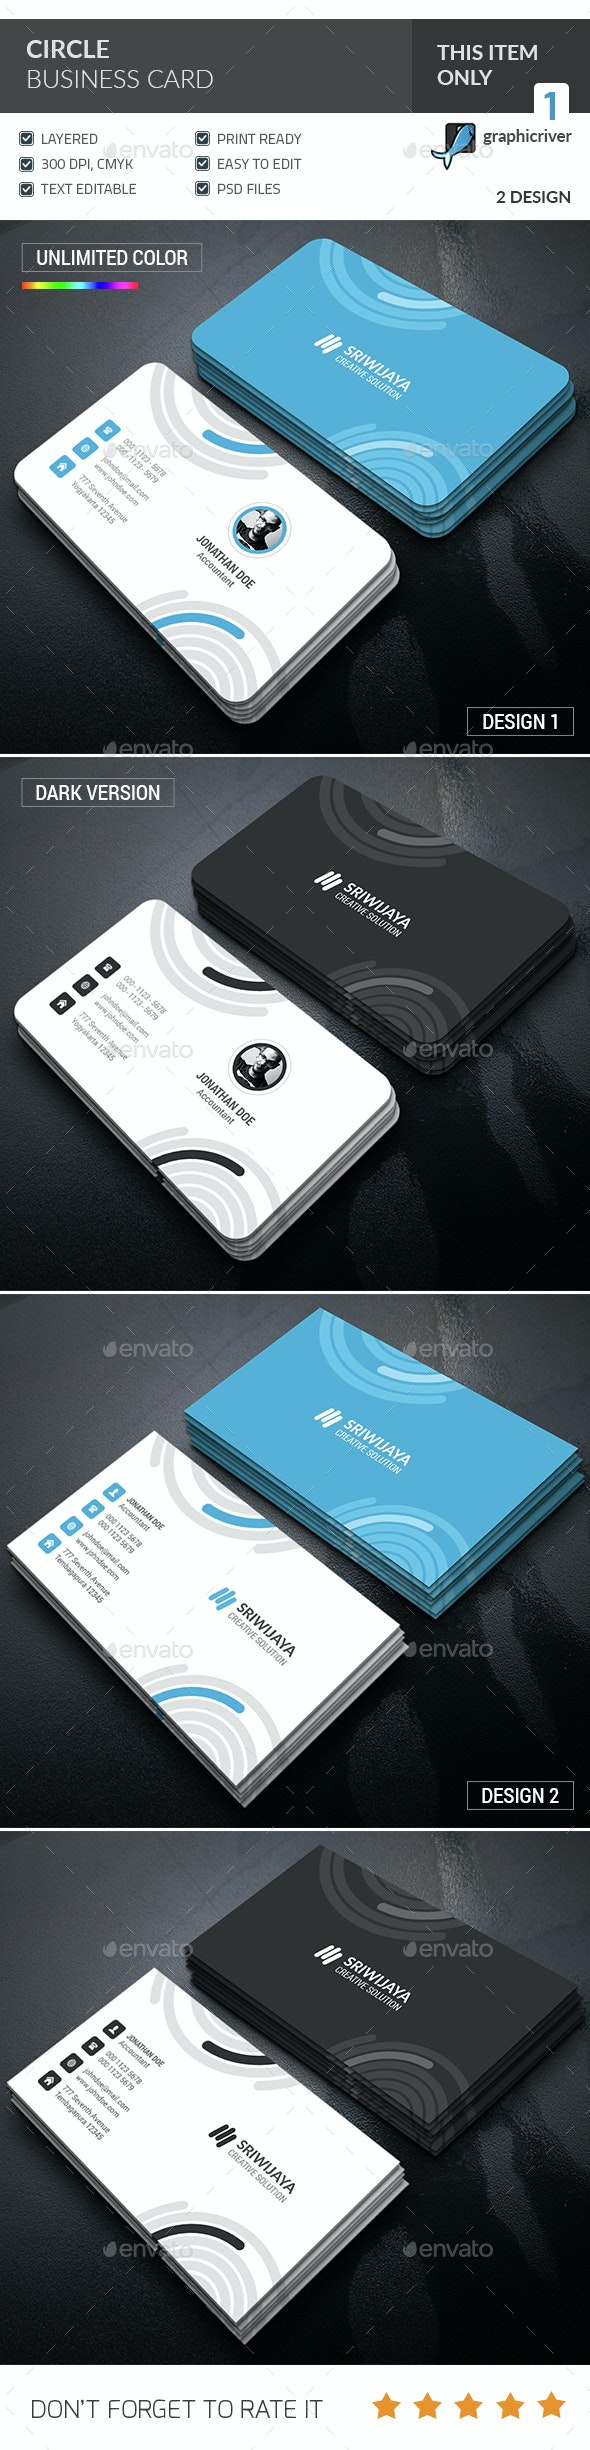 Circle Business Card  - Corporate Business Cards